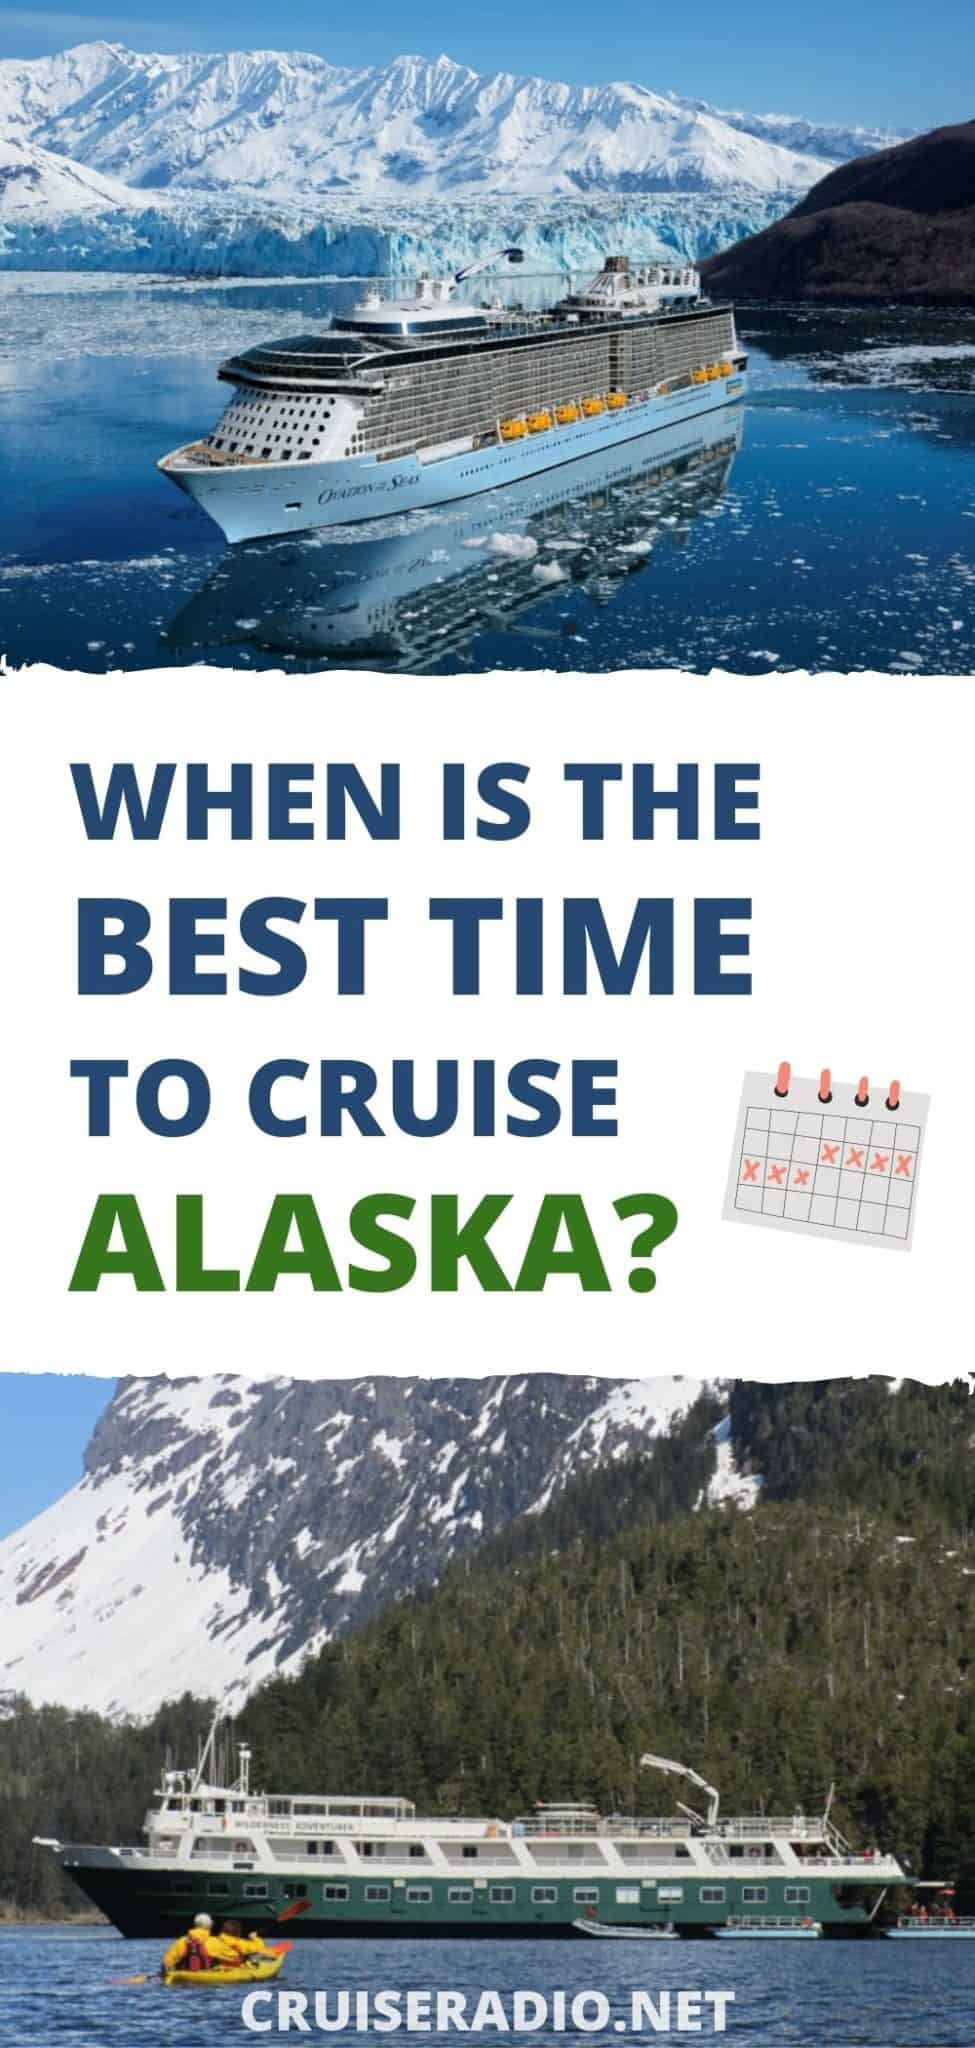 the best time to cruise alaska pinterest image